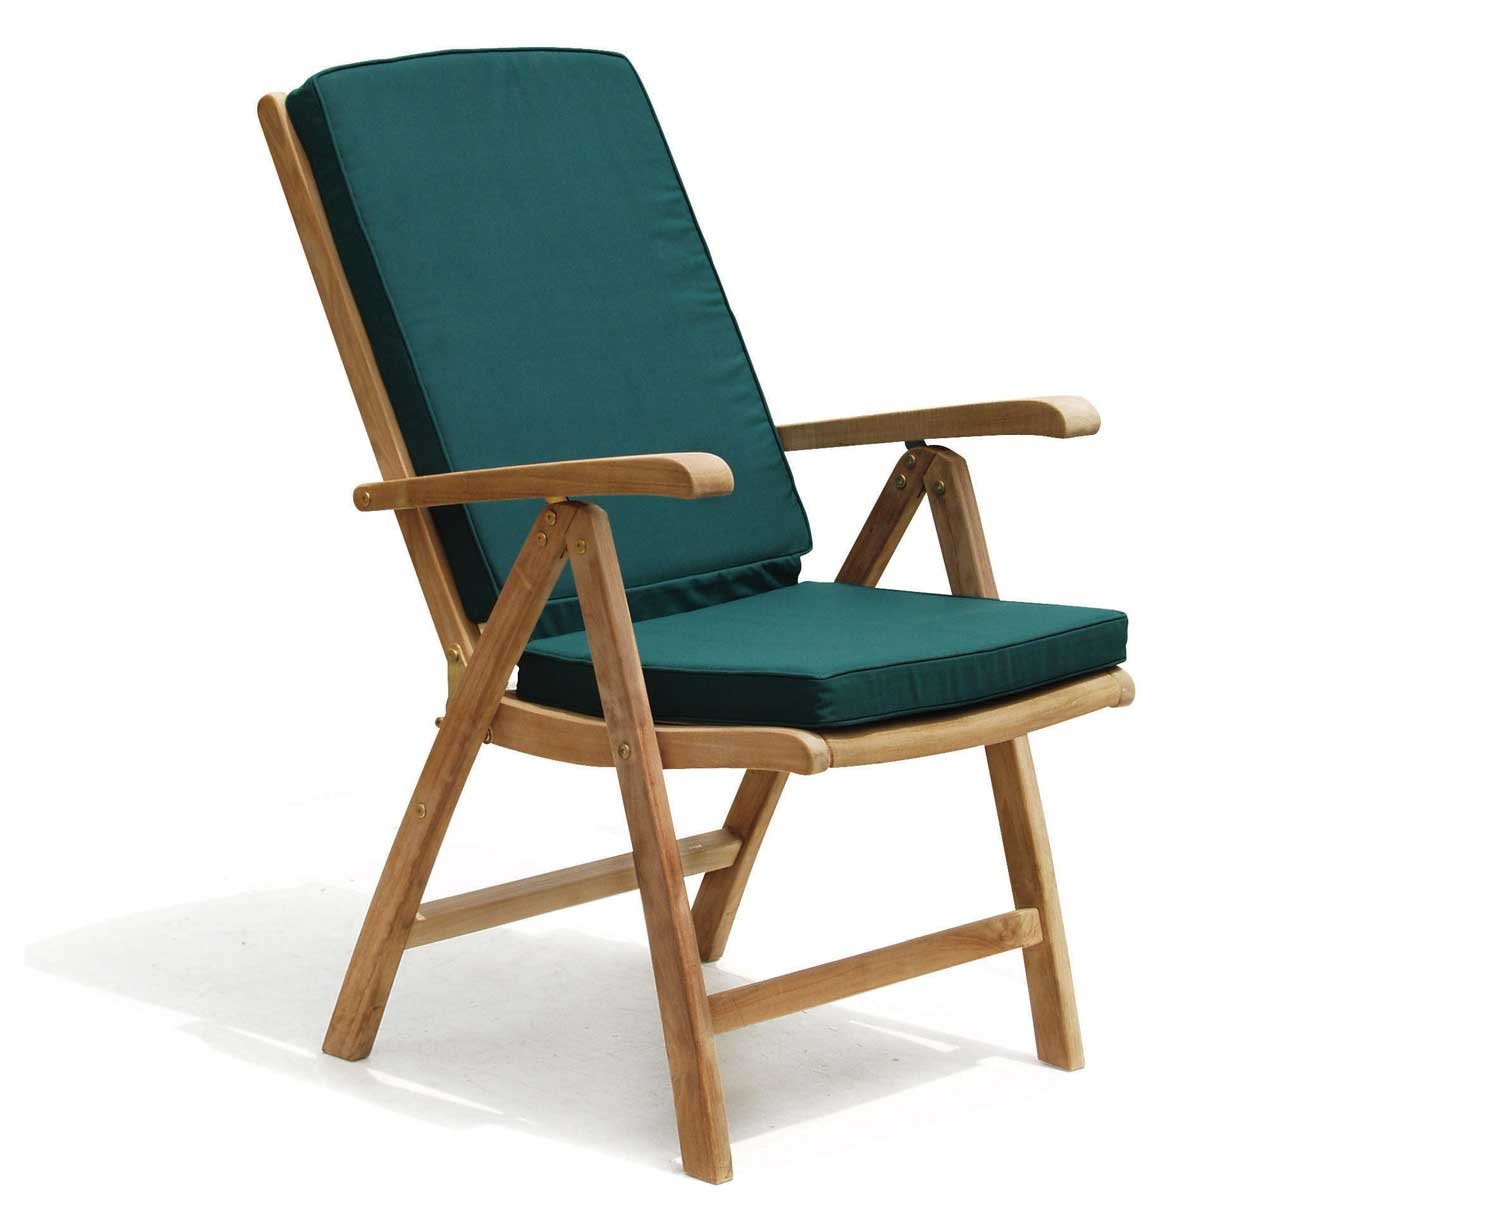 teak recliner garden chair with green cushion jati brand quality value amazoncouk garden outdoors